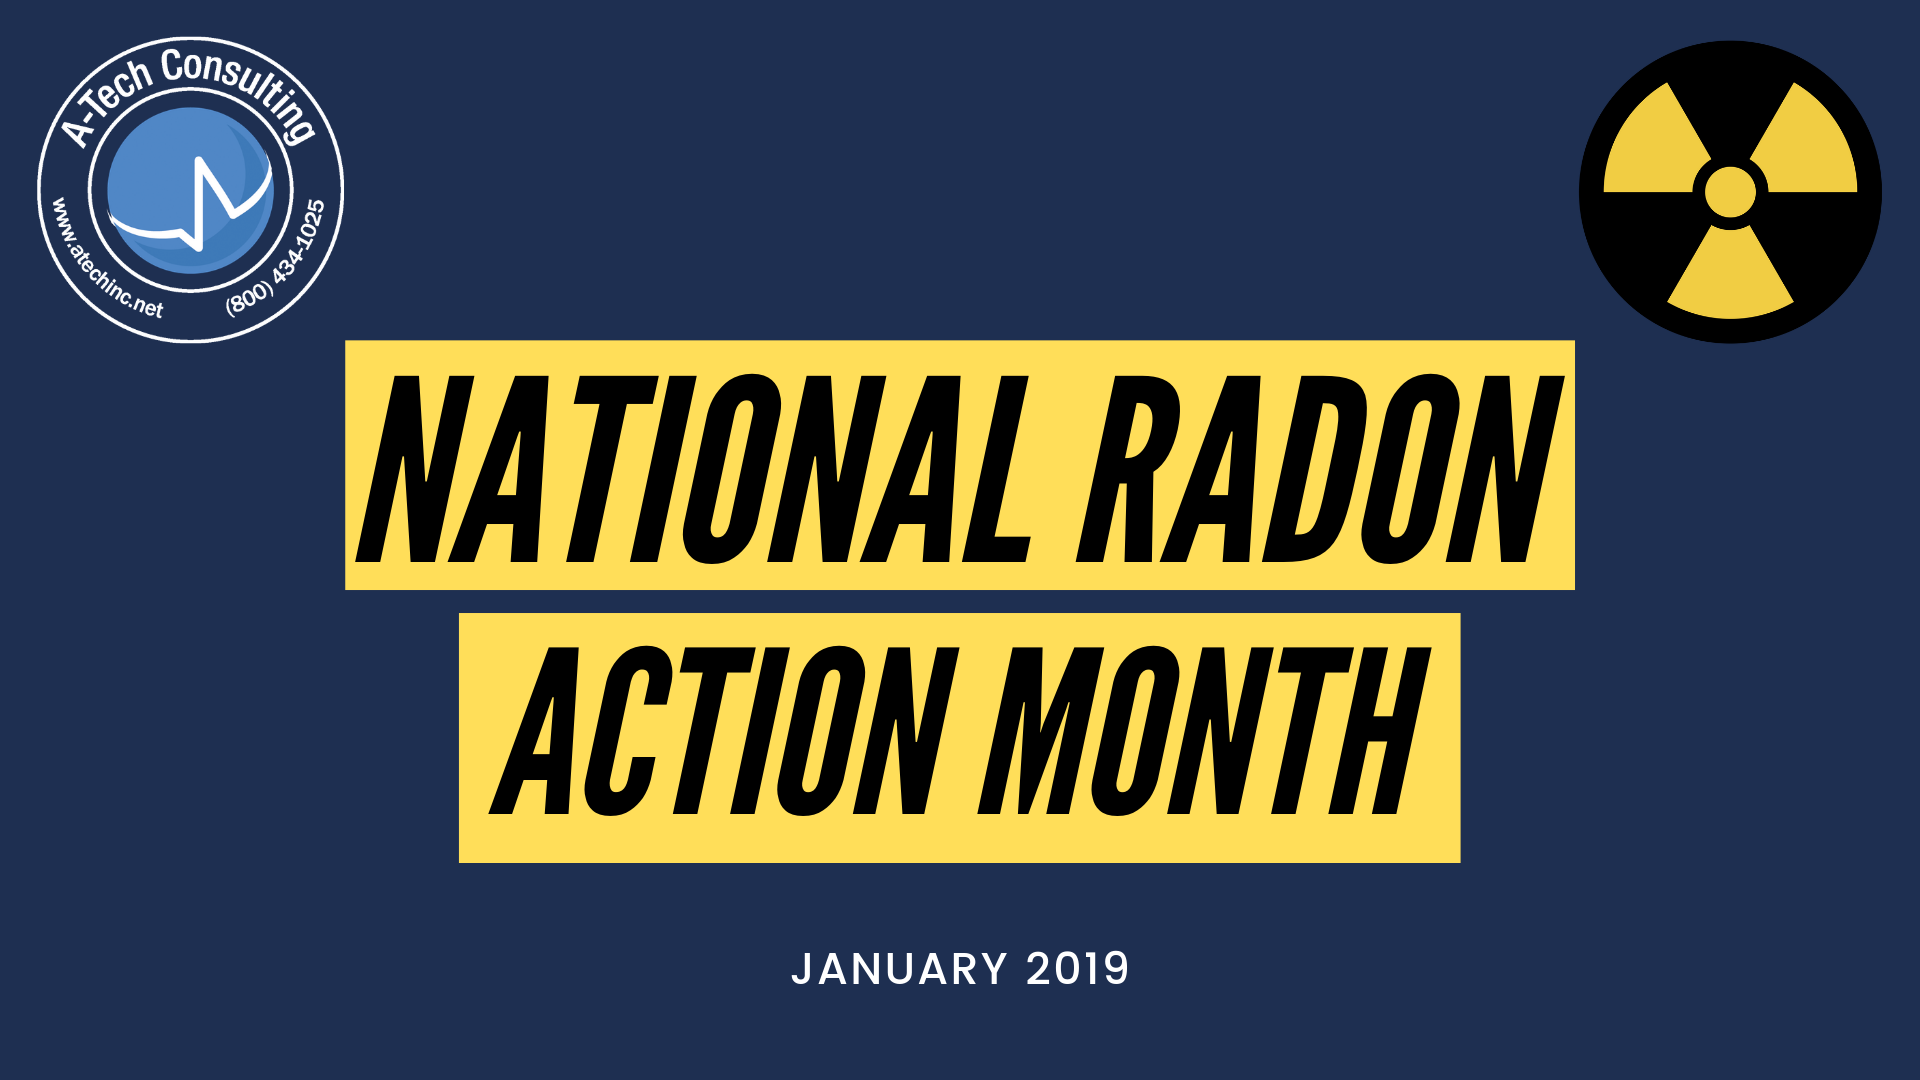 A-Tech National Radon Action Month